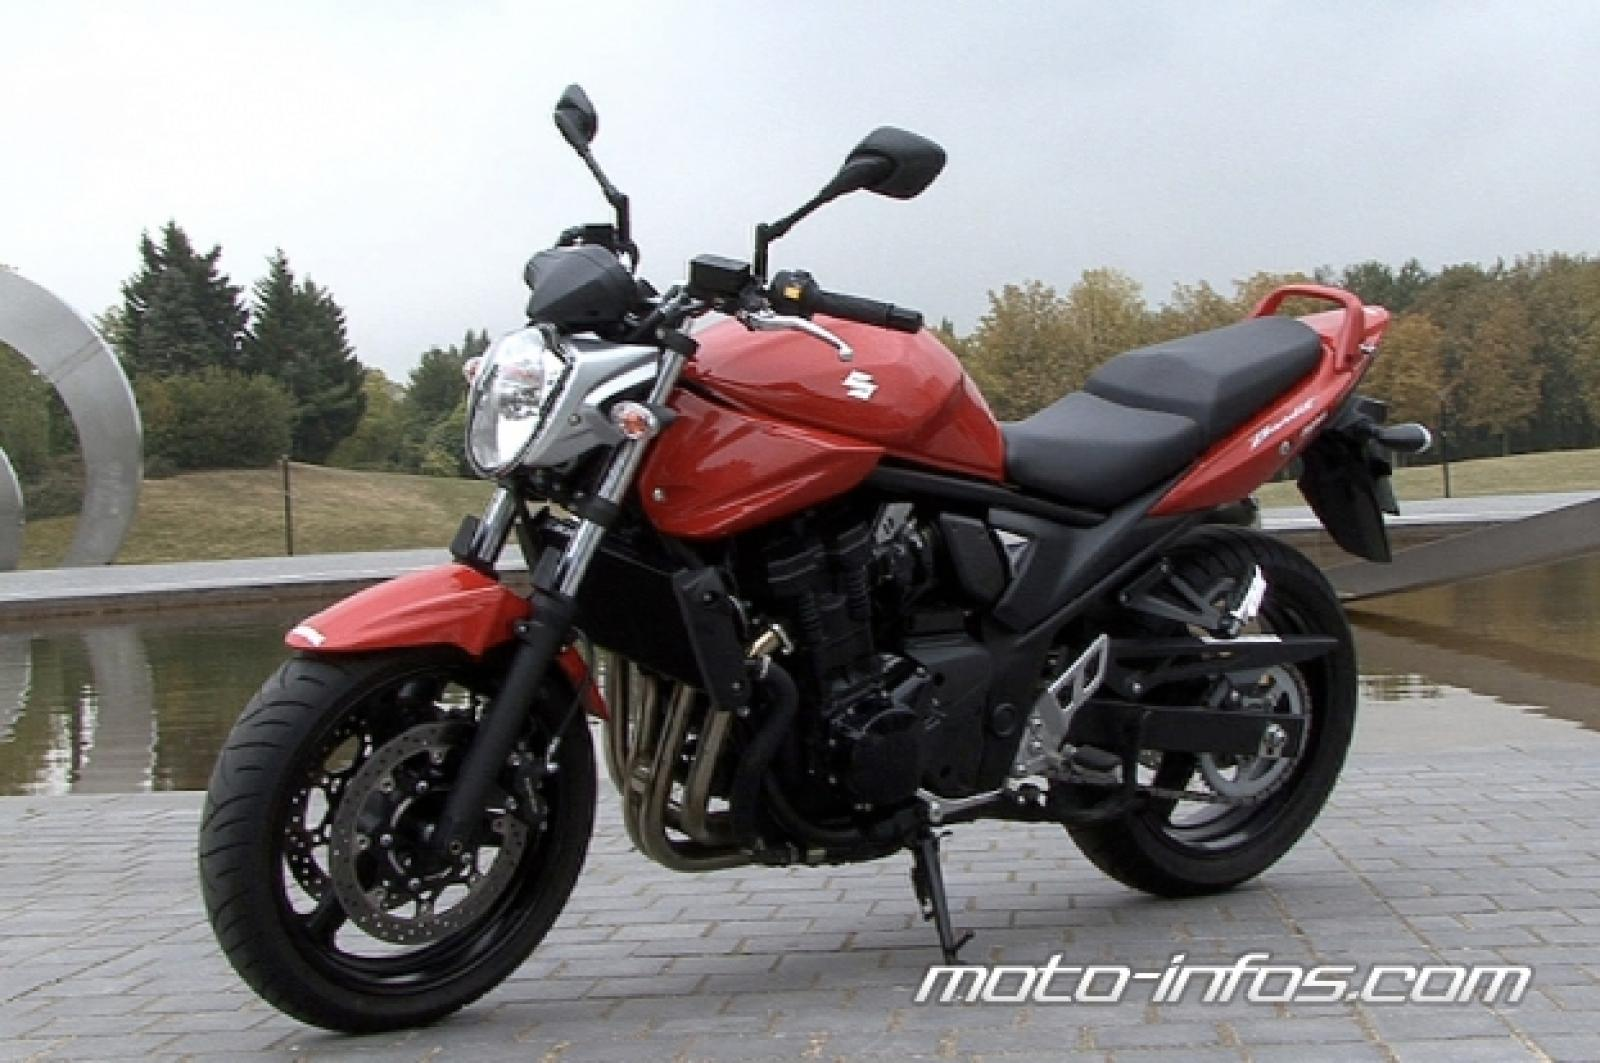 2012 suzuki bandit 650 moto zombdrive com. Black Bedroom Furniture Sets. Home Design Ideas